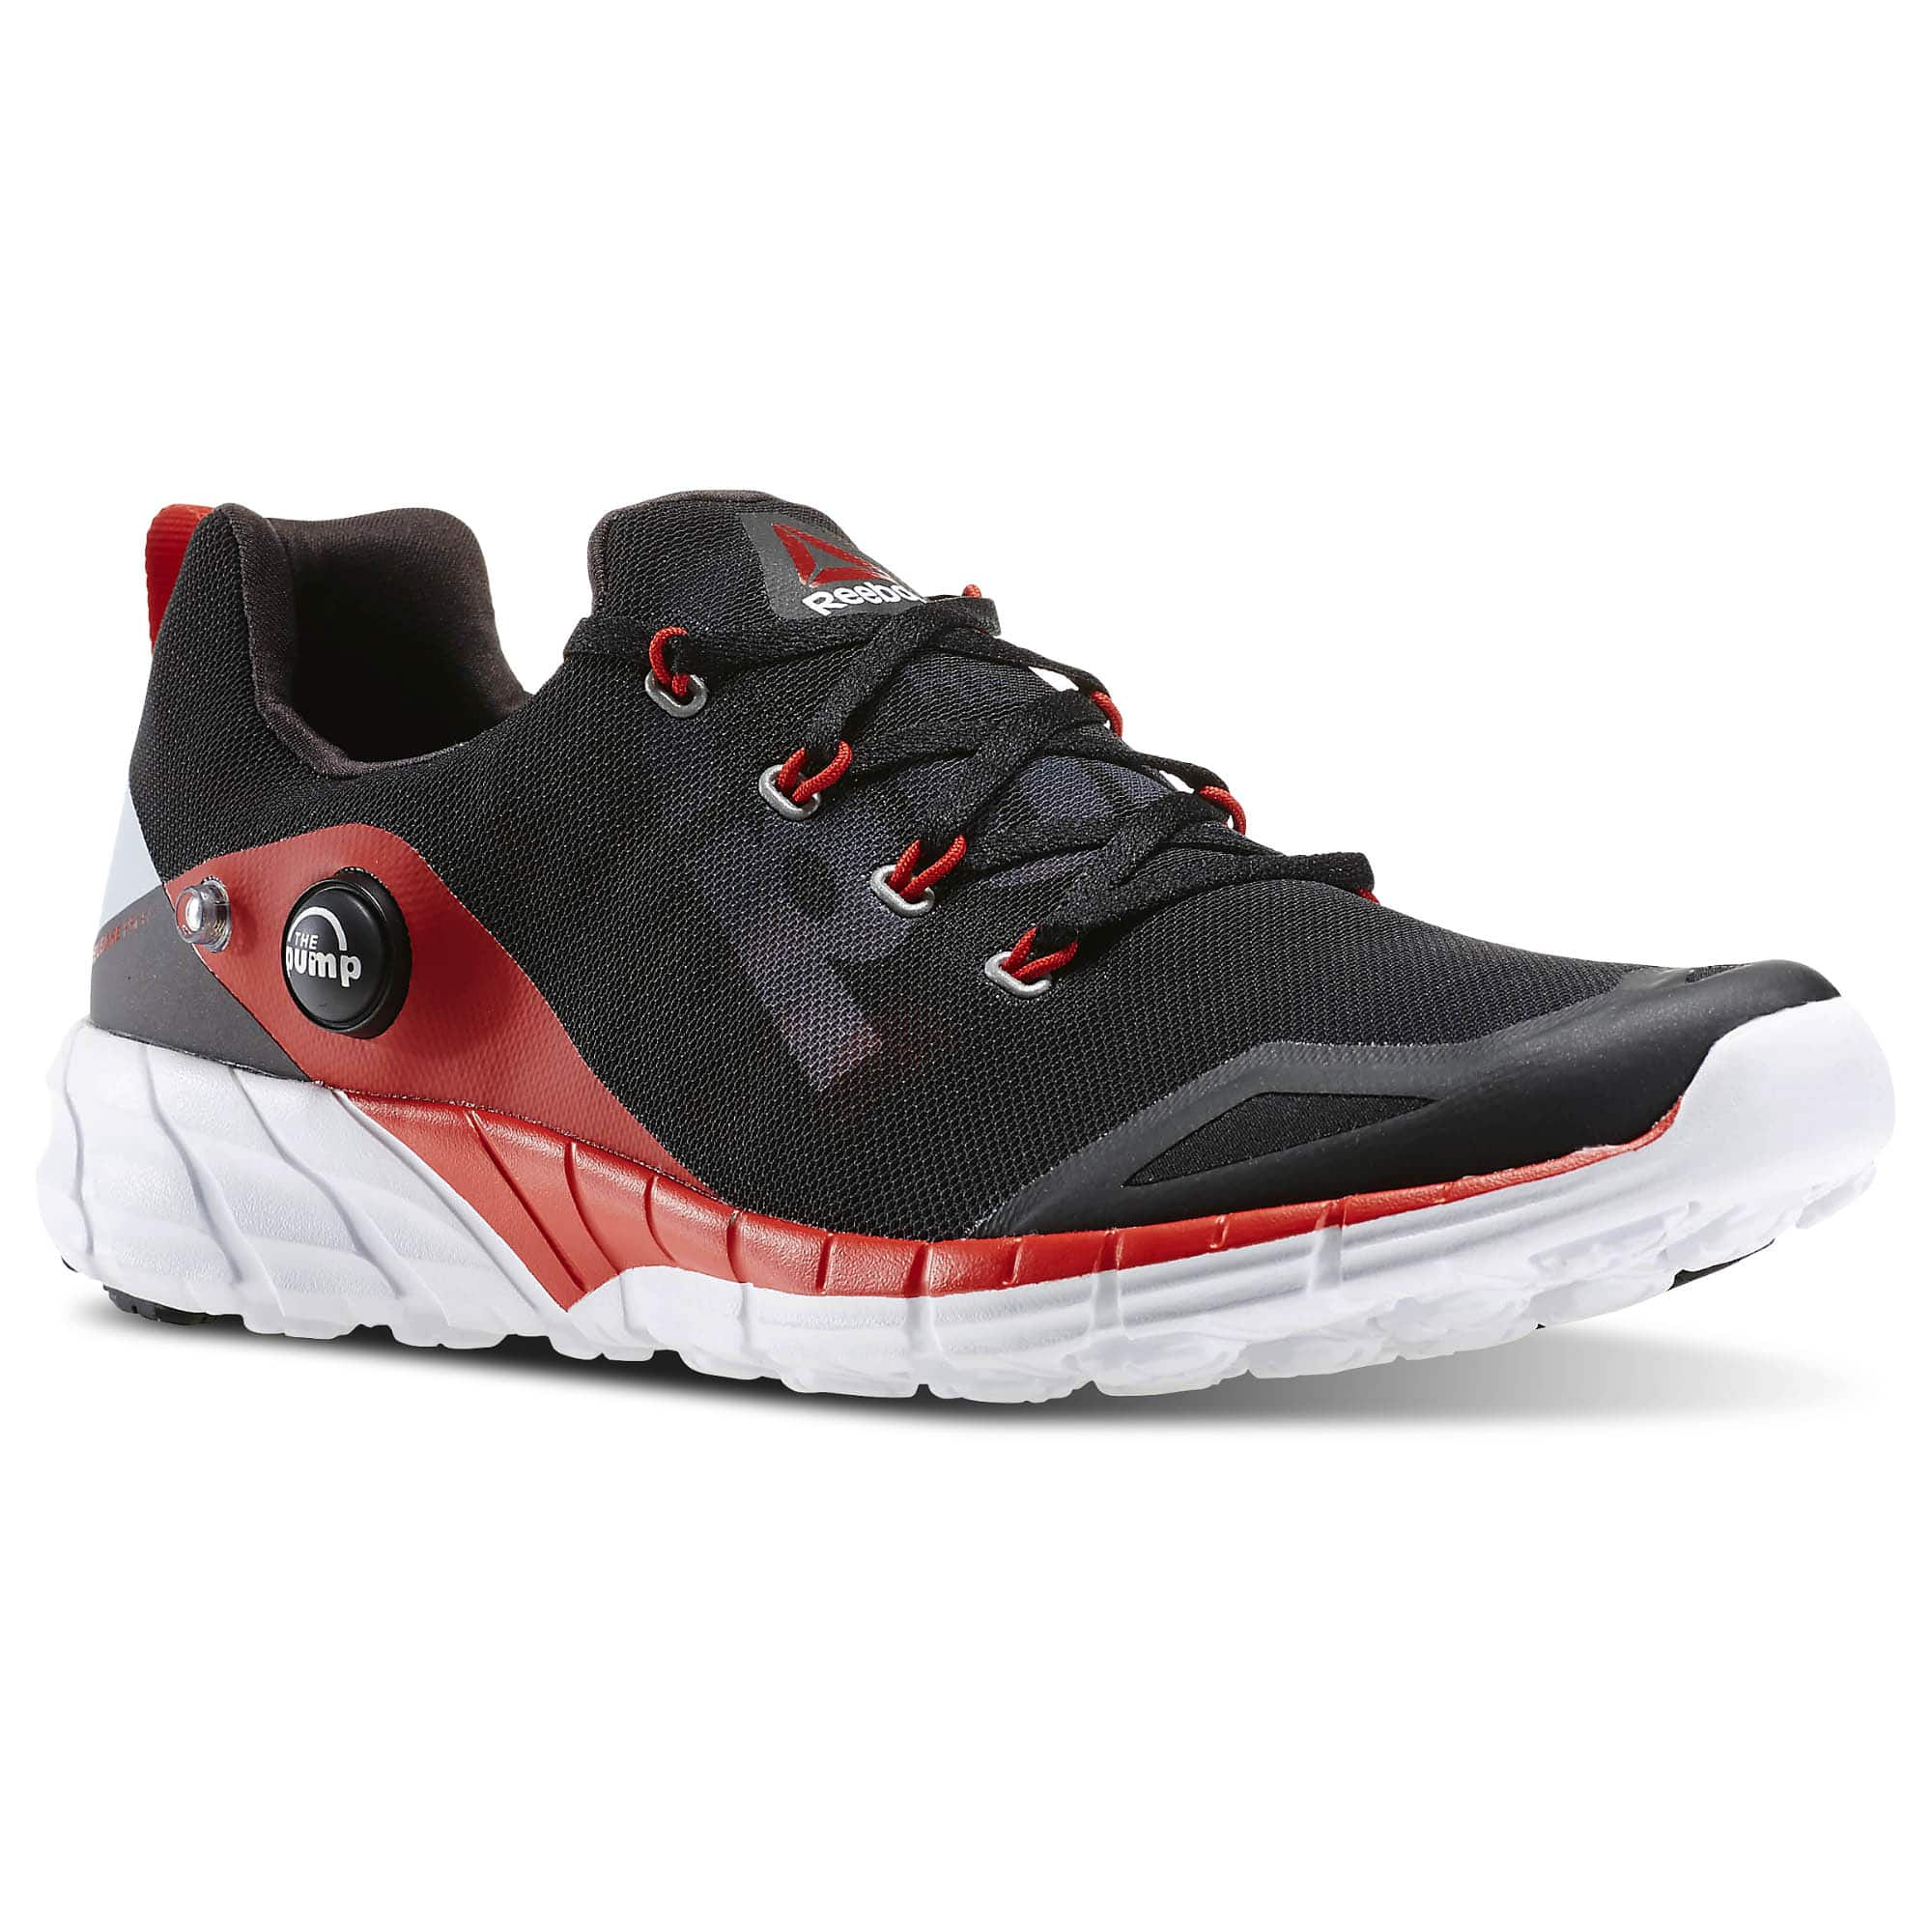 Reebok ZPump Fusion 2.0 Men's or Women's Running/Training Shoes  $45 + Free Shipping